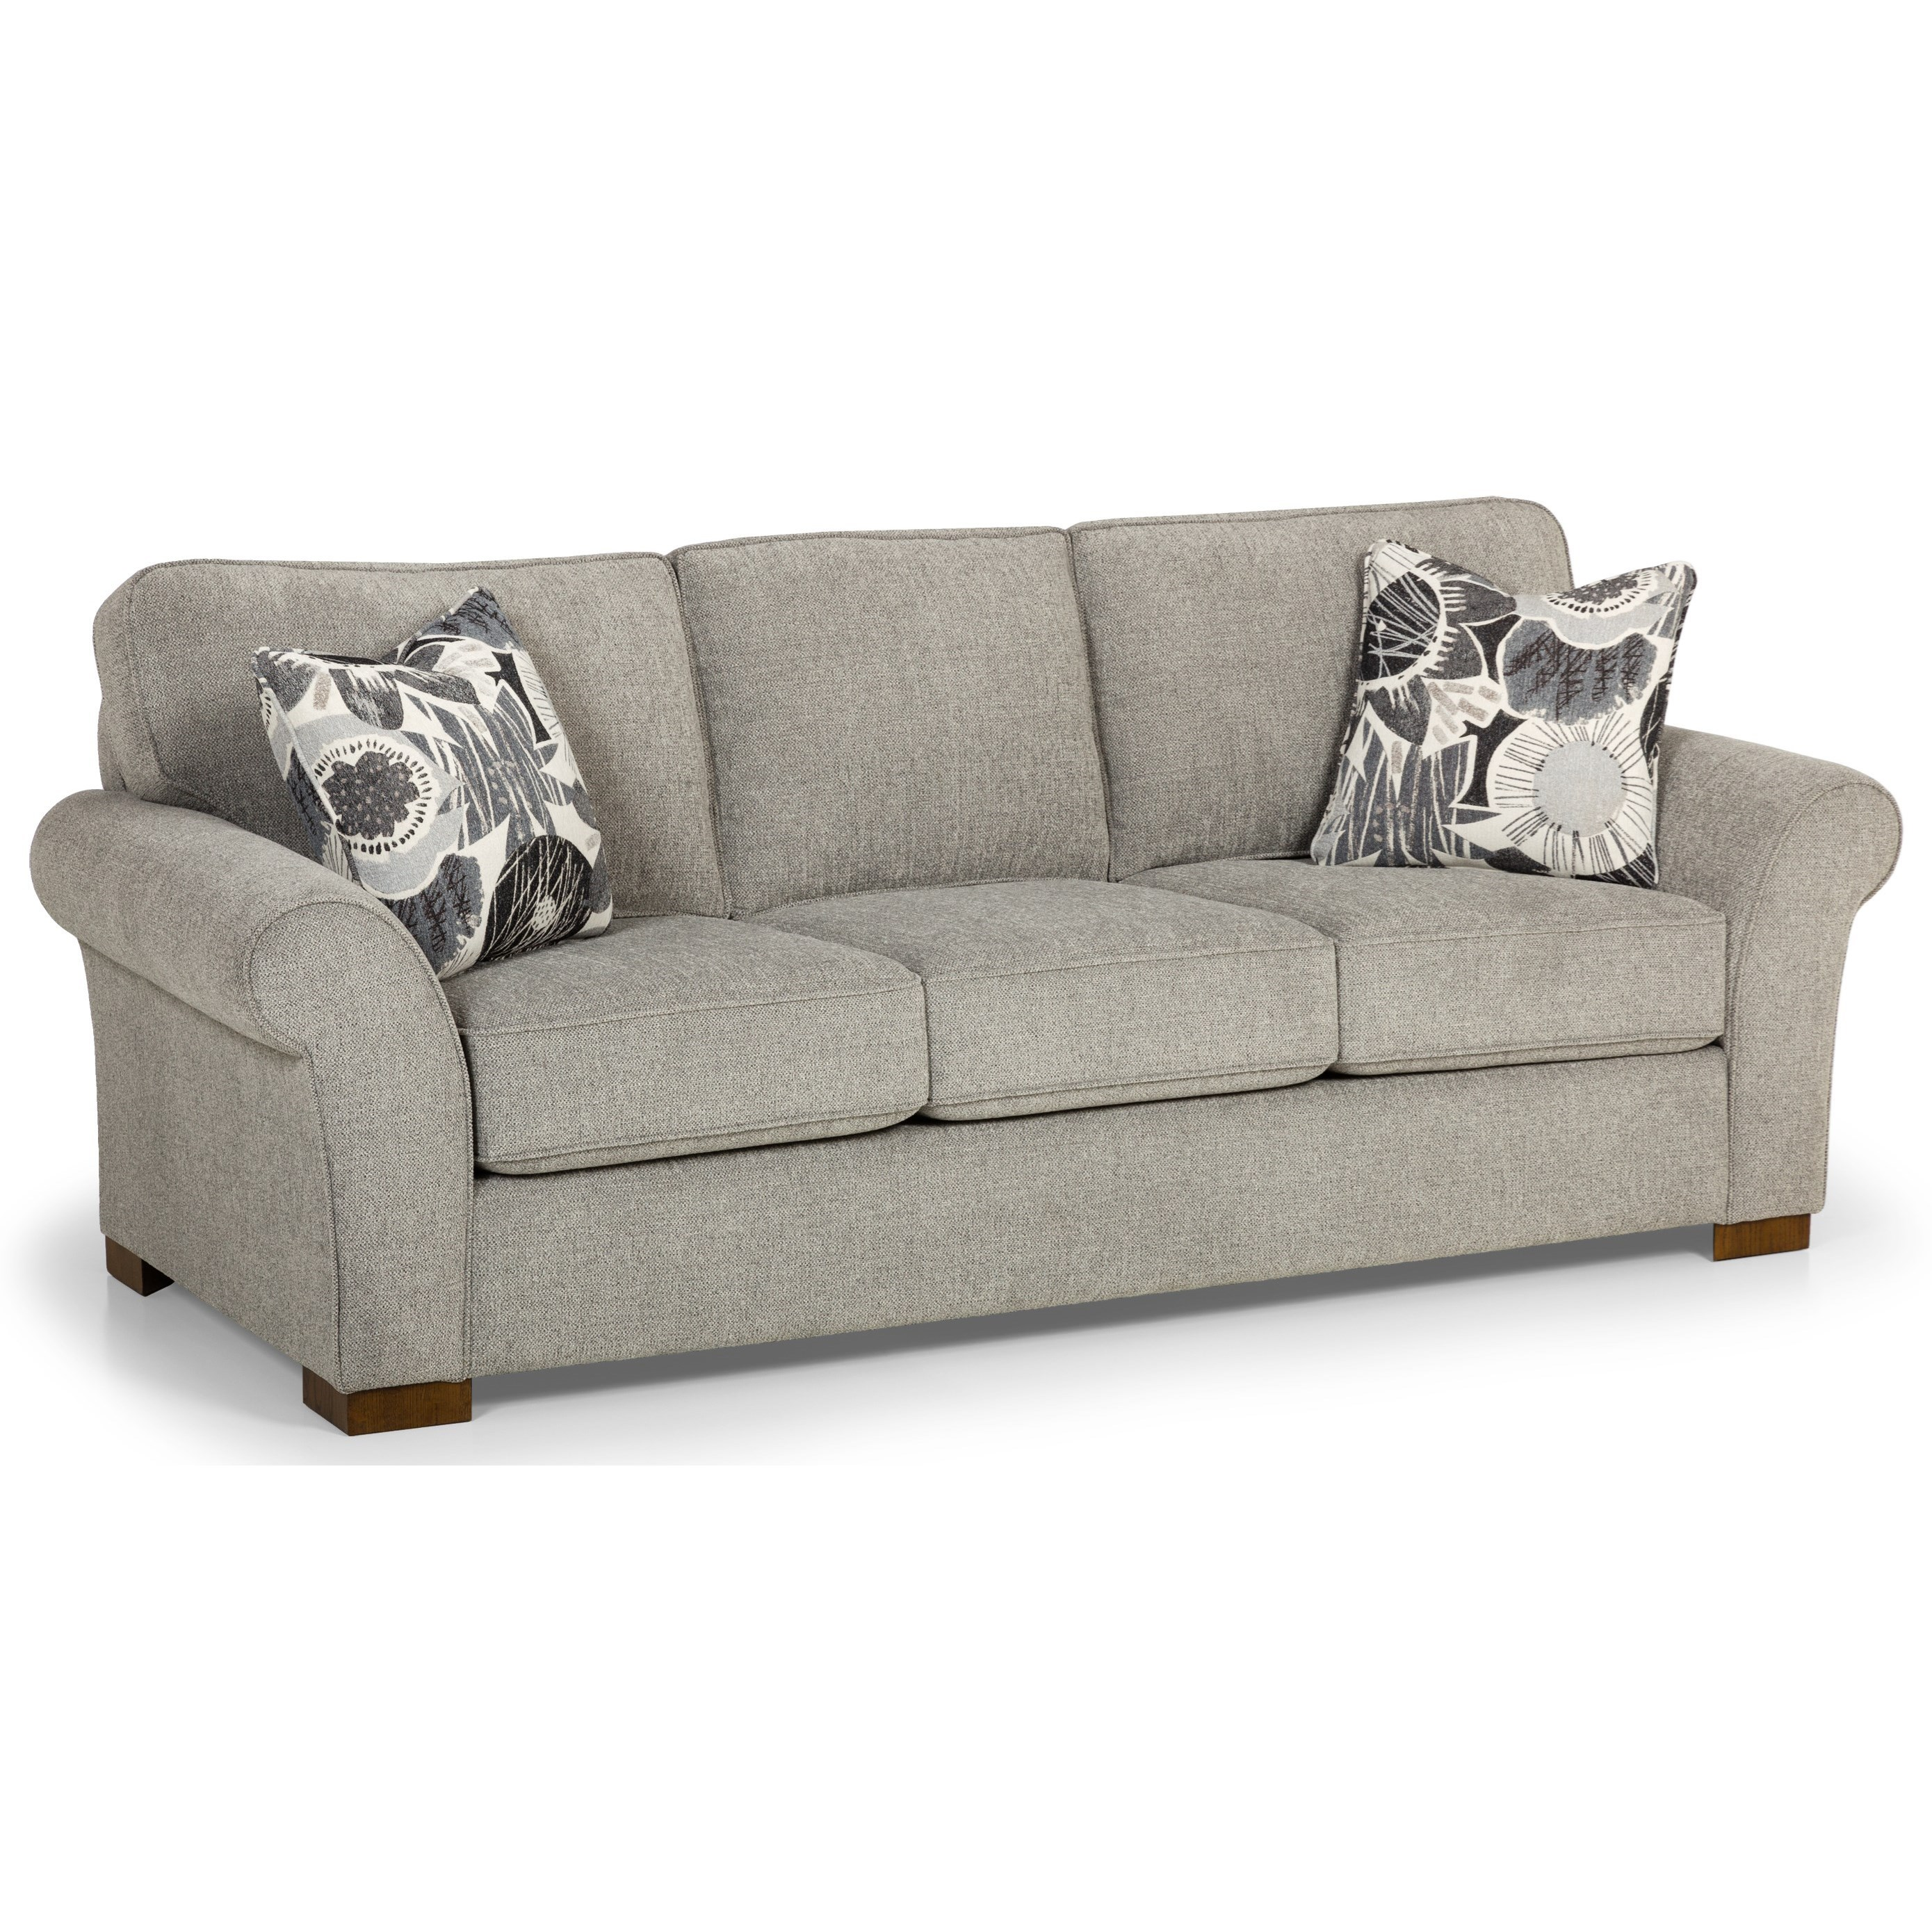 551 Sofa by Stanton at Wilson's Furniture